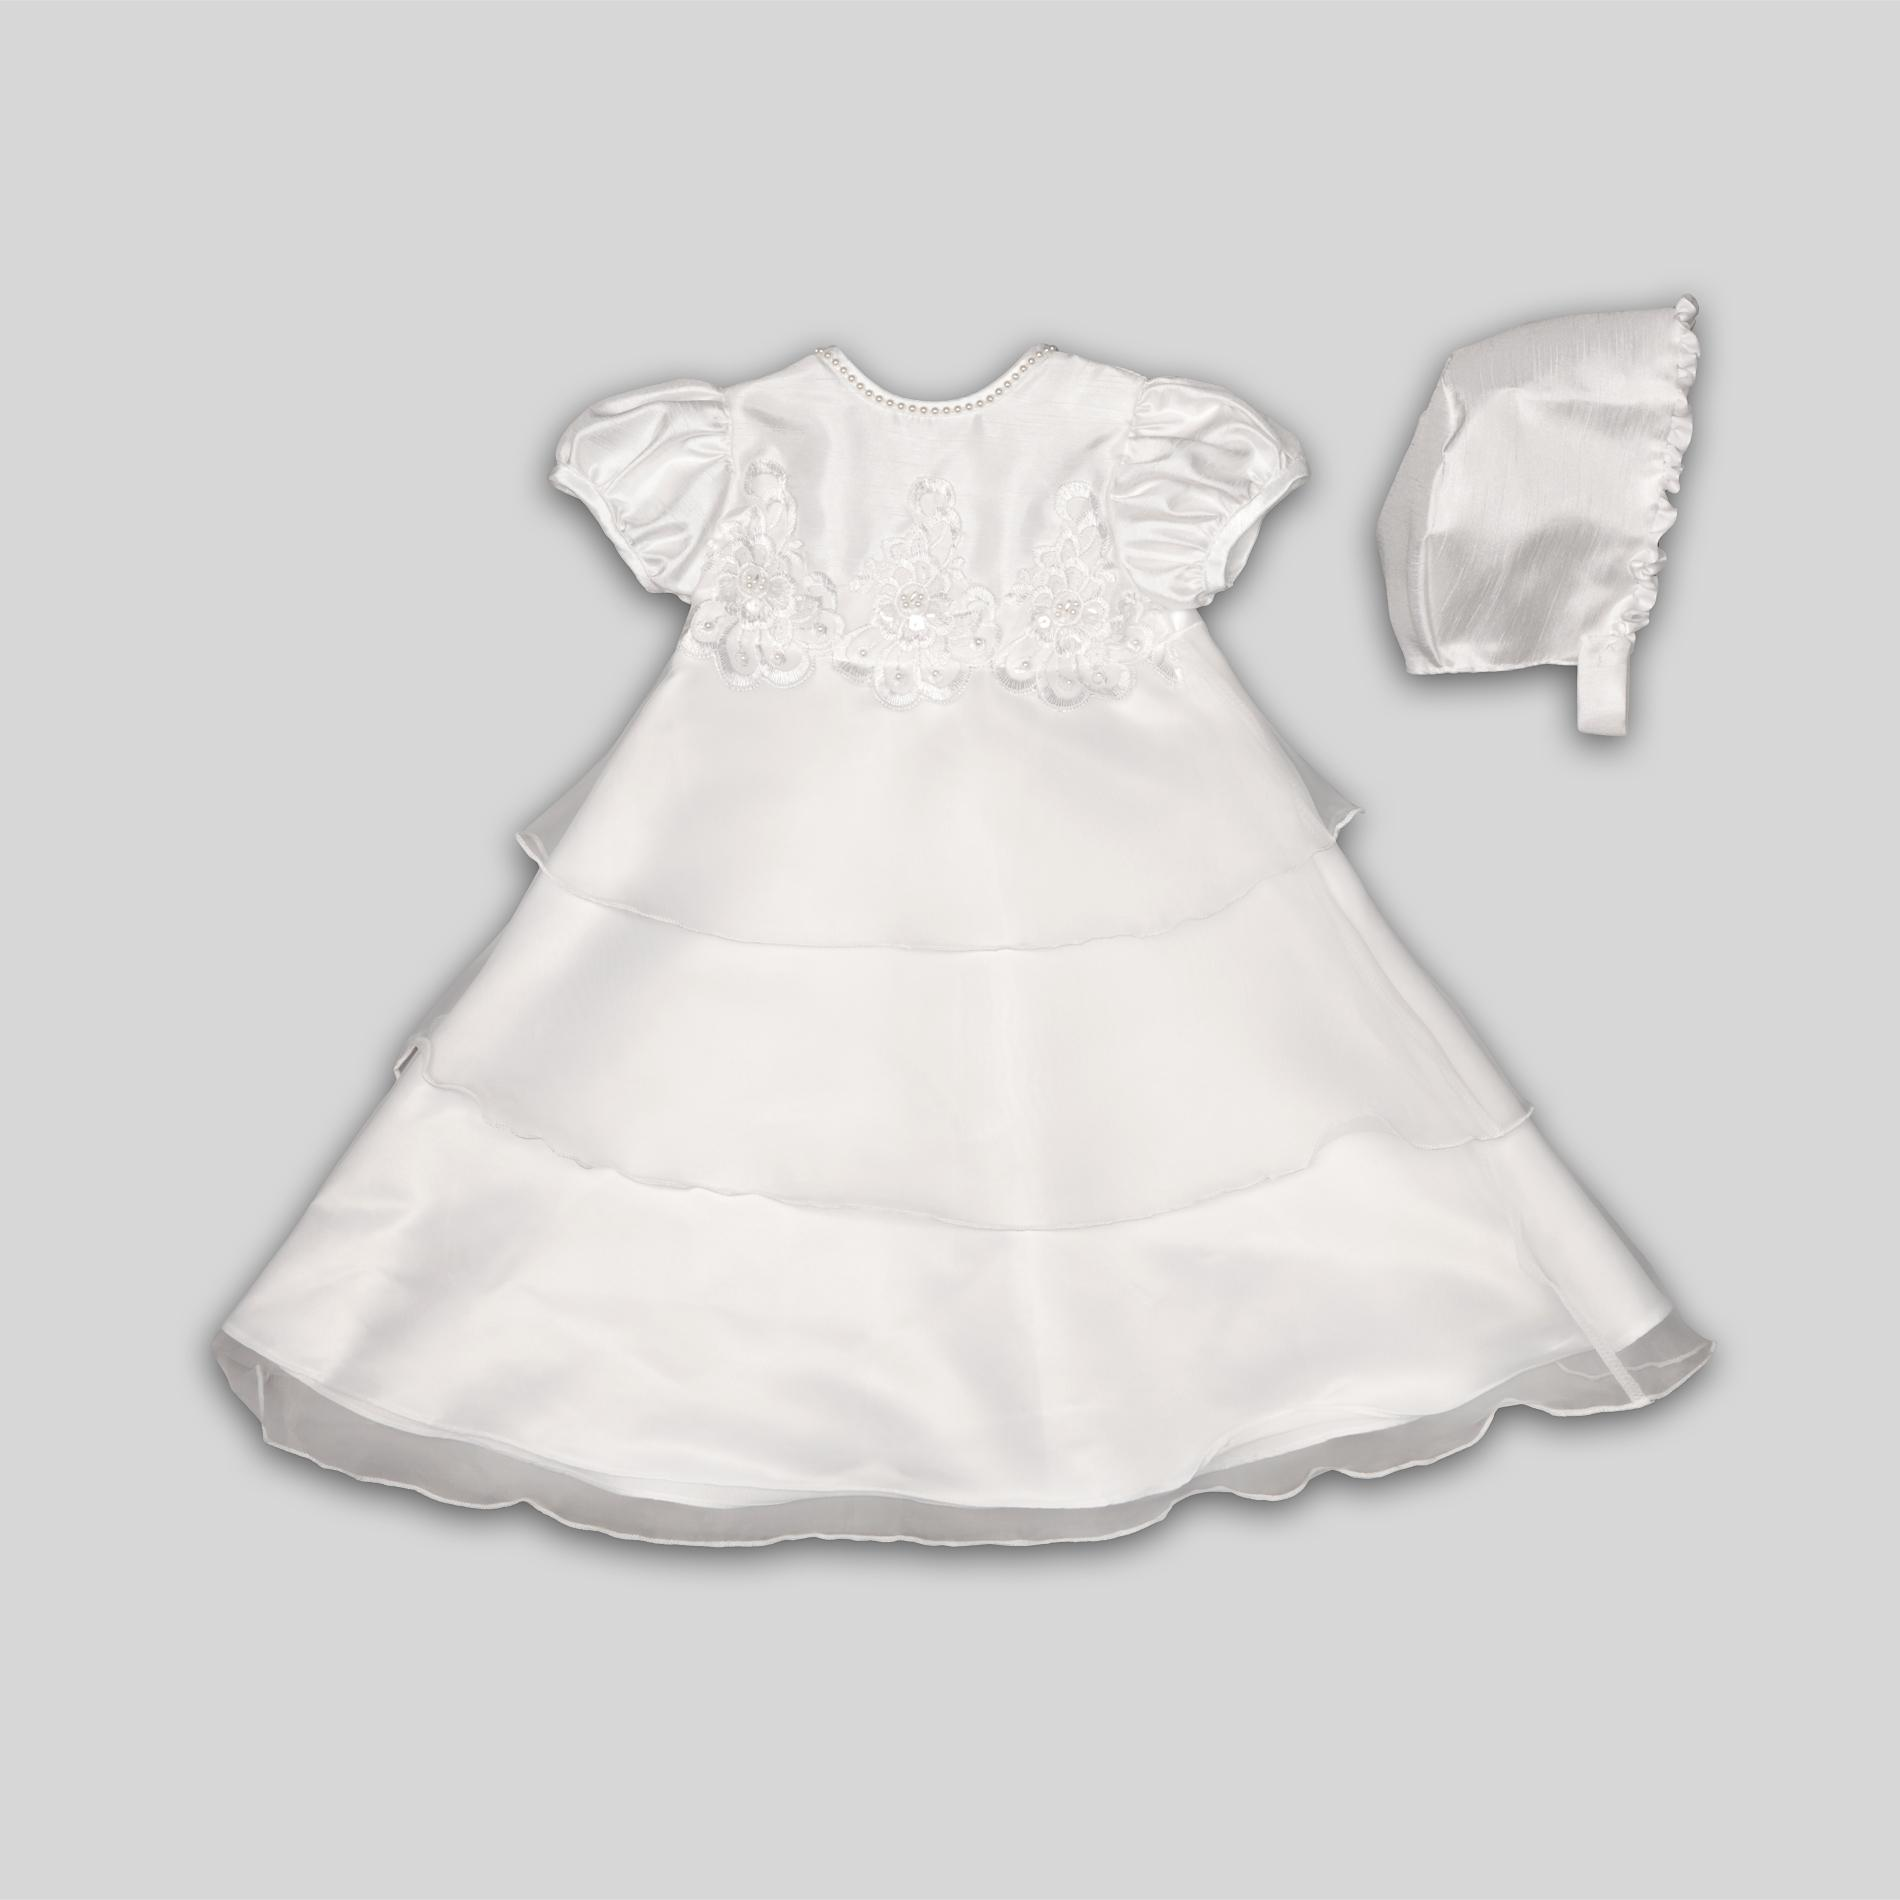 Infant Girl's Christening Dress & Bonnet